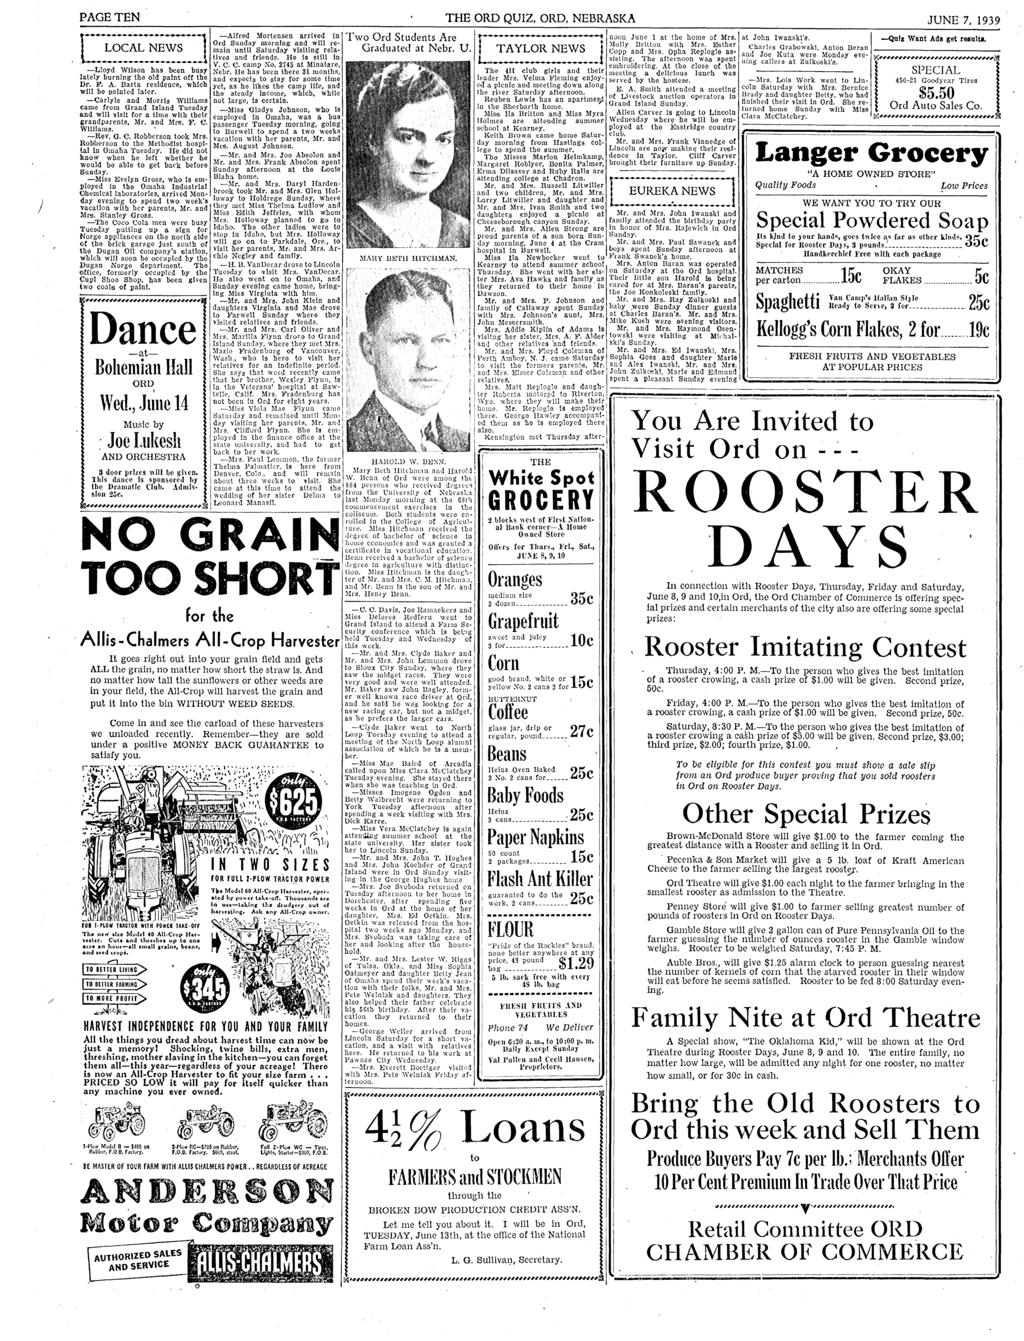 ) PAGE TEN THE ORO QUZ ORO NEBRASKA JUNE 7 1939 [ --------------------] LOCAL NEWS -Lloyd ------------------- Wilson has been busy lately burning the old paint off the Dr F A Barta residence which